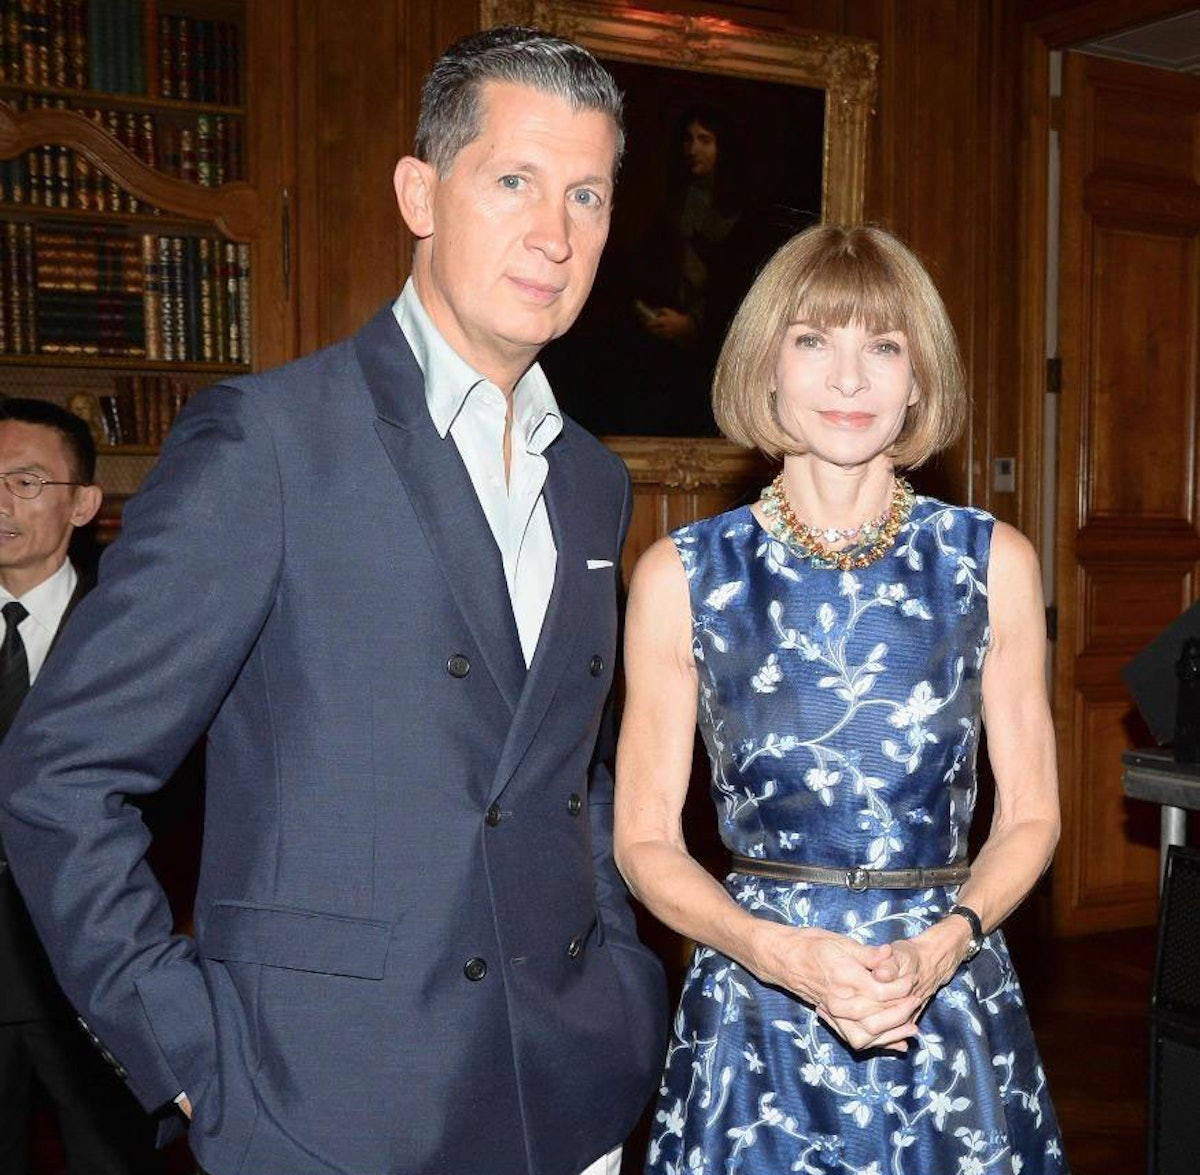 Stefano Tonchi and Anna Wintour. Photo by BFAnyc.com.